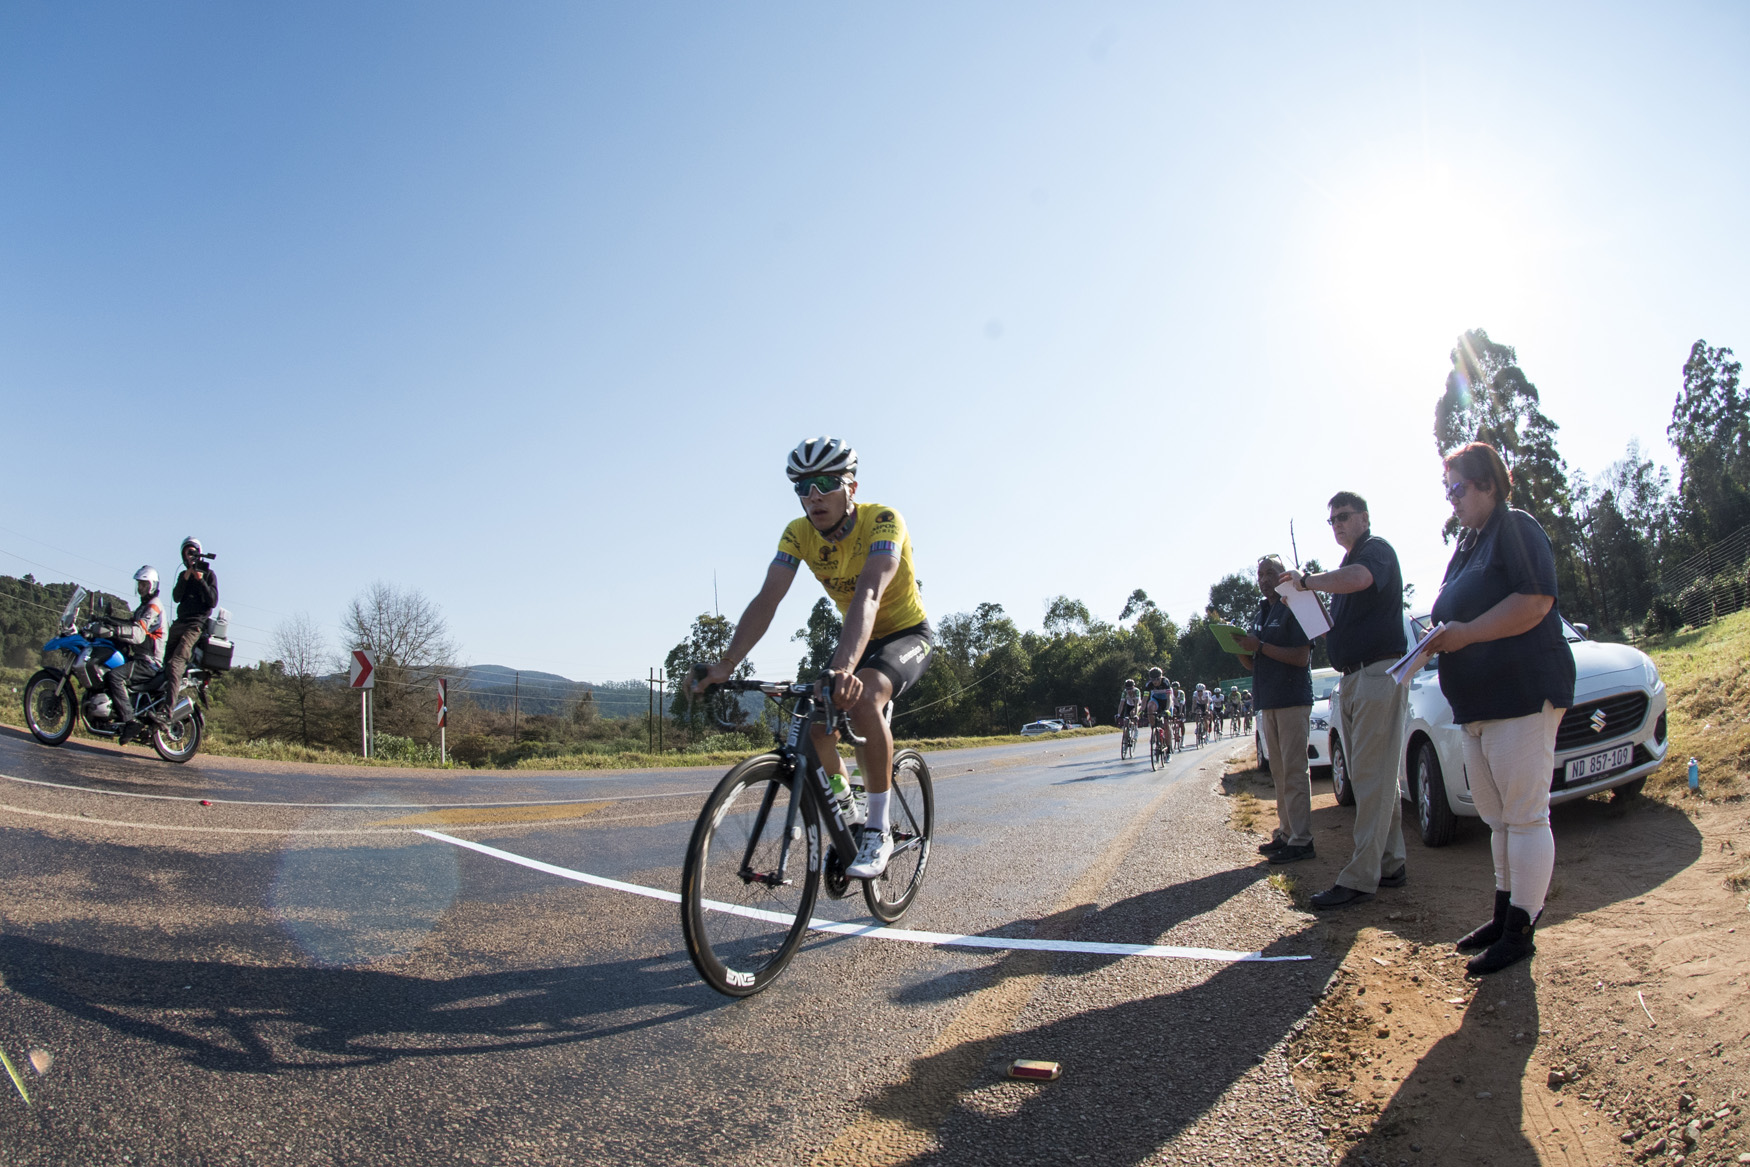 For the General Classification contention, Team Dimension Data Continental safely guarded their key man, the multiple jersey holder Samuele Battistella, to secure the overall GC victory  from Tzaneen to Peter Mokaba Stadium, Polokwane, on Stage 4 of the 2019 Tour de Limpopo (UCI 2.2) from 14-18 May © Tour de Limpopo/Andrew Mc Fadden